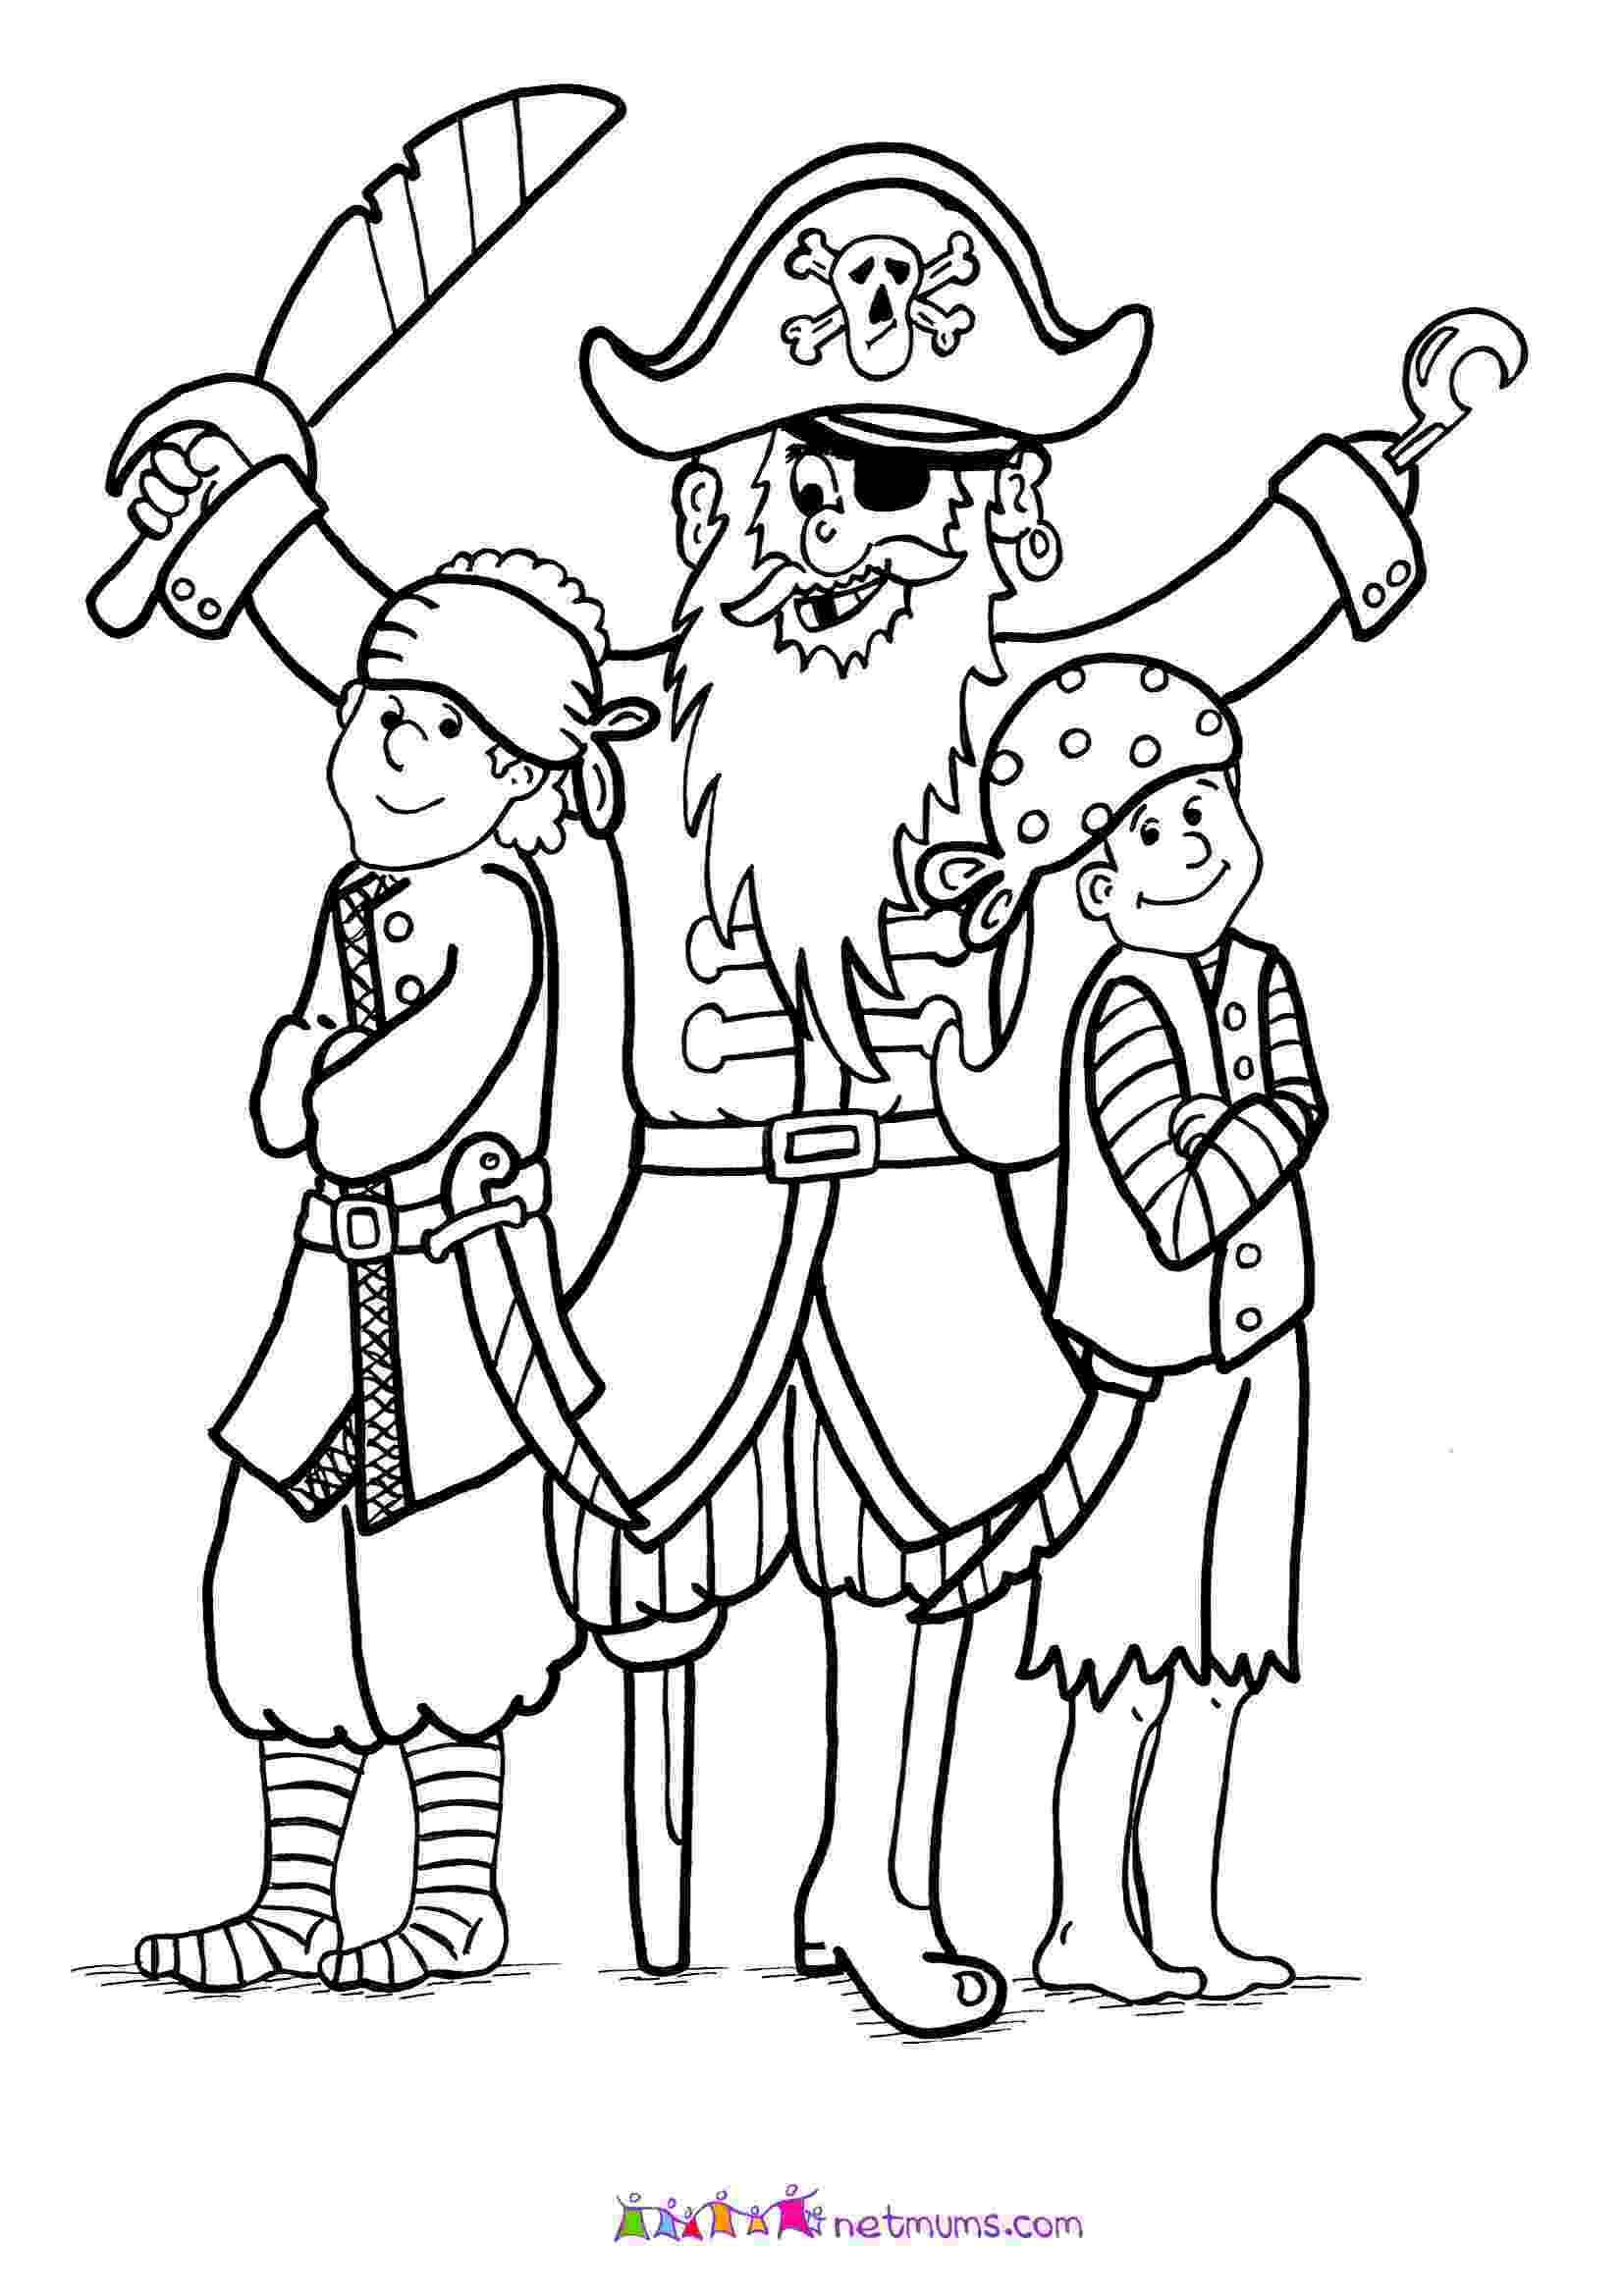 pirates coloring pages pirate coloring pages hook pirate coloring pages kids coloring pirates pages